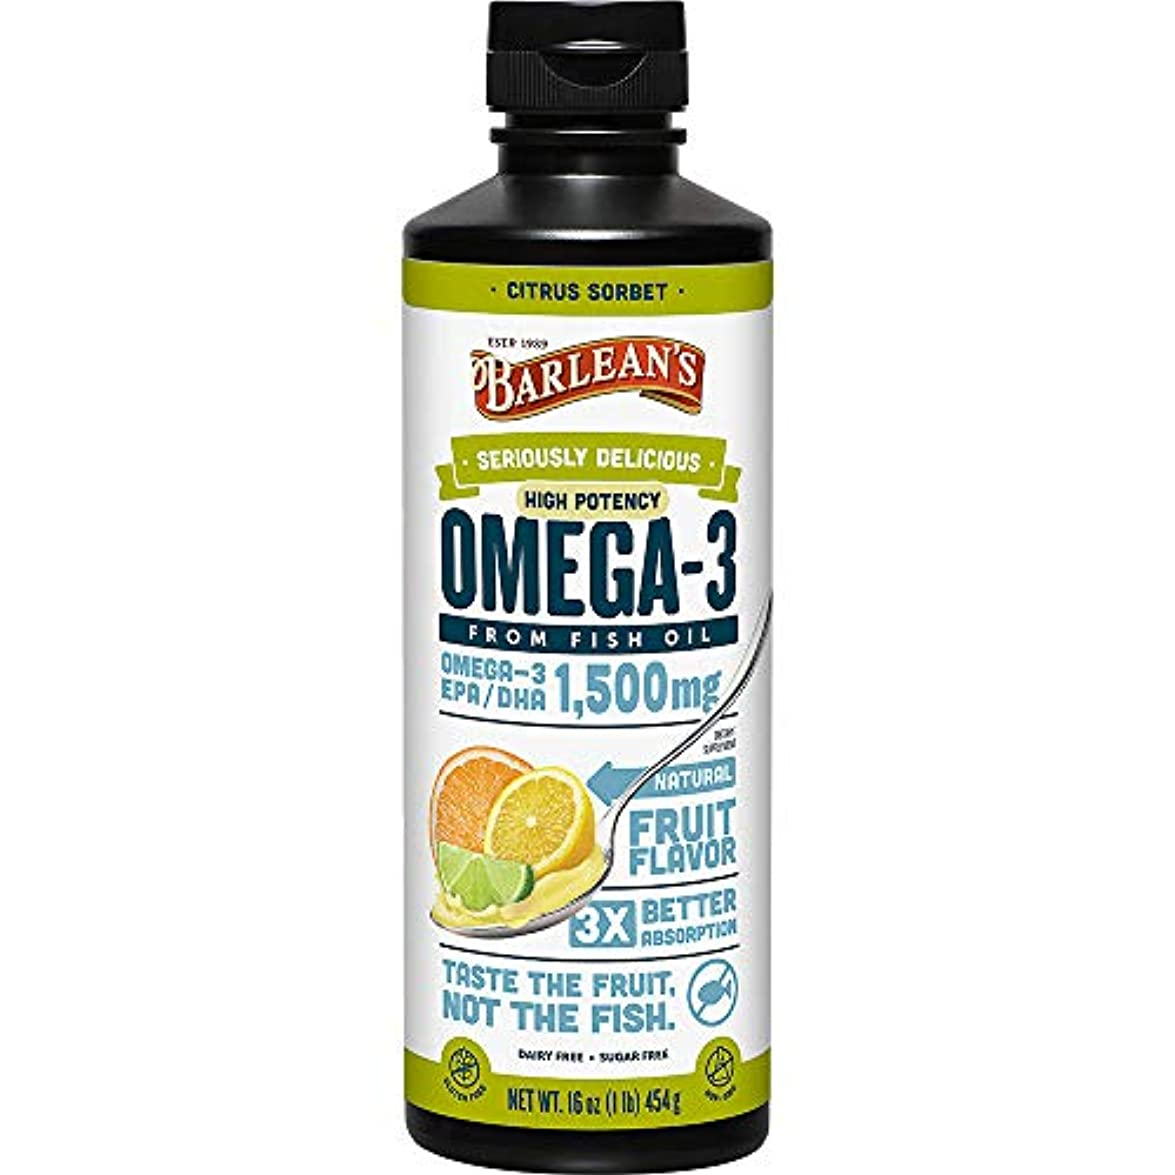 ベッツィトロットウッド衰える手綱Omega Swirl, Ultra High Potency Fish Oil, Citrus Sorbet - Barlean's - UK Seller by Barlean's